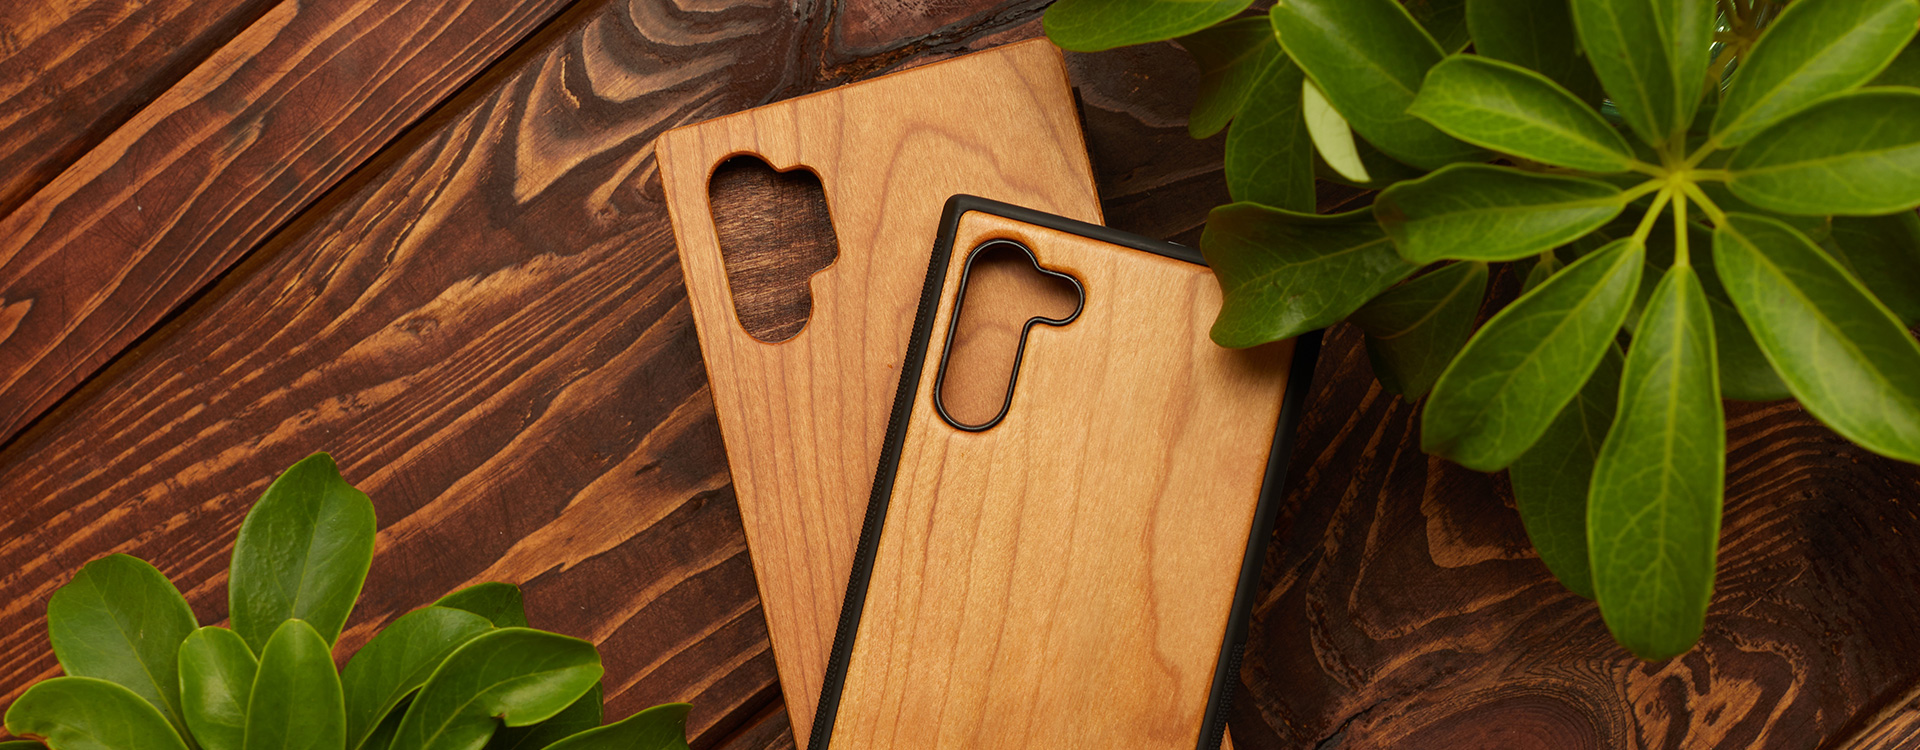 Most Protective Phone Cases